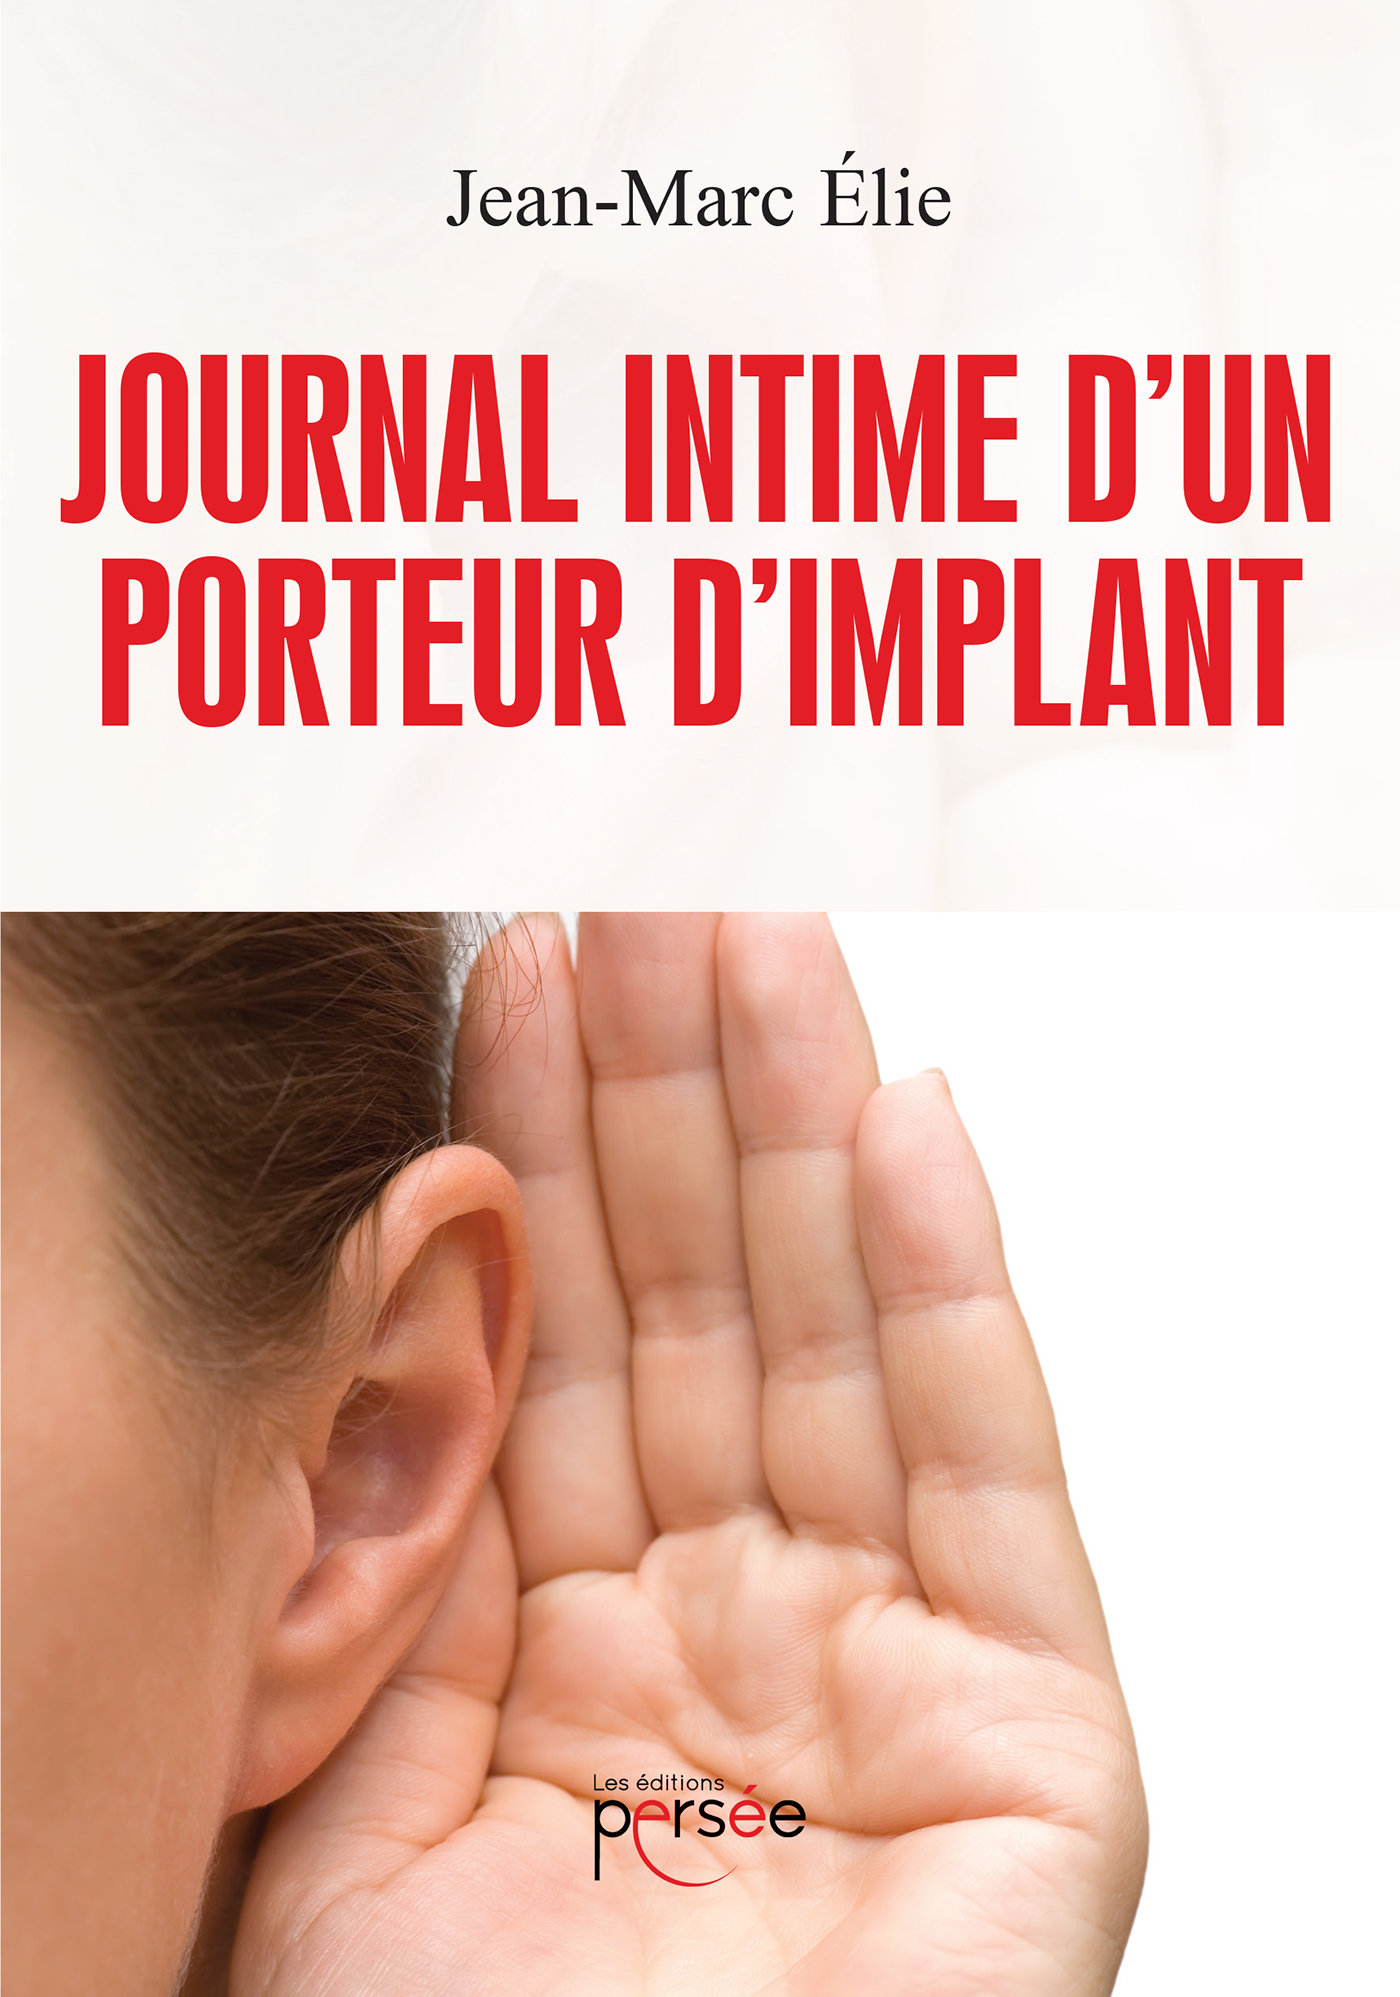 Journal intime d'un porteur d'implant